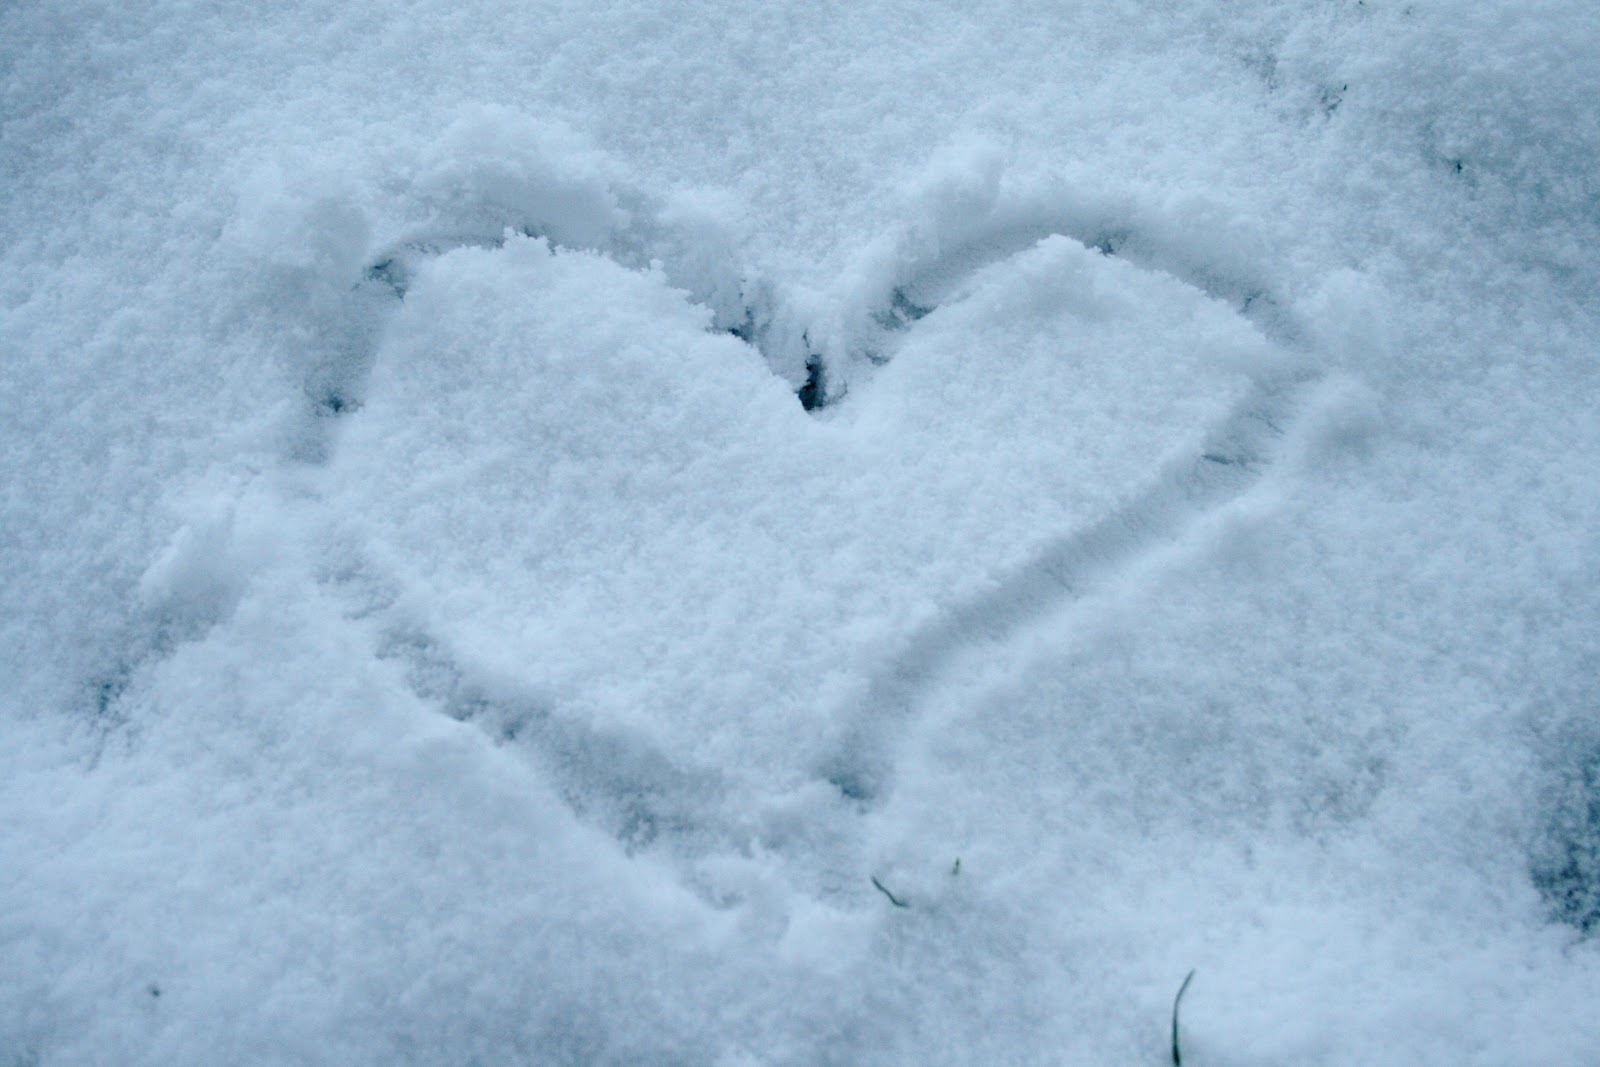 File:Heart of snow.JPG